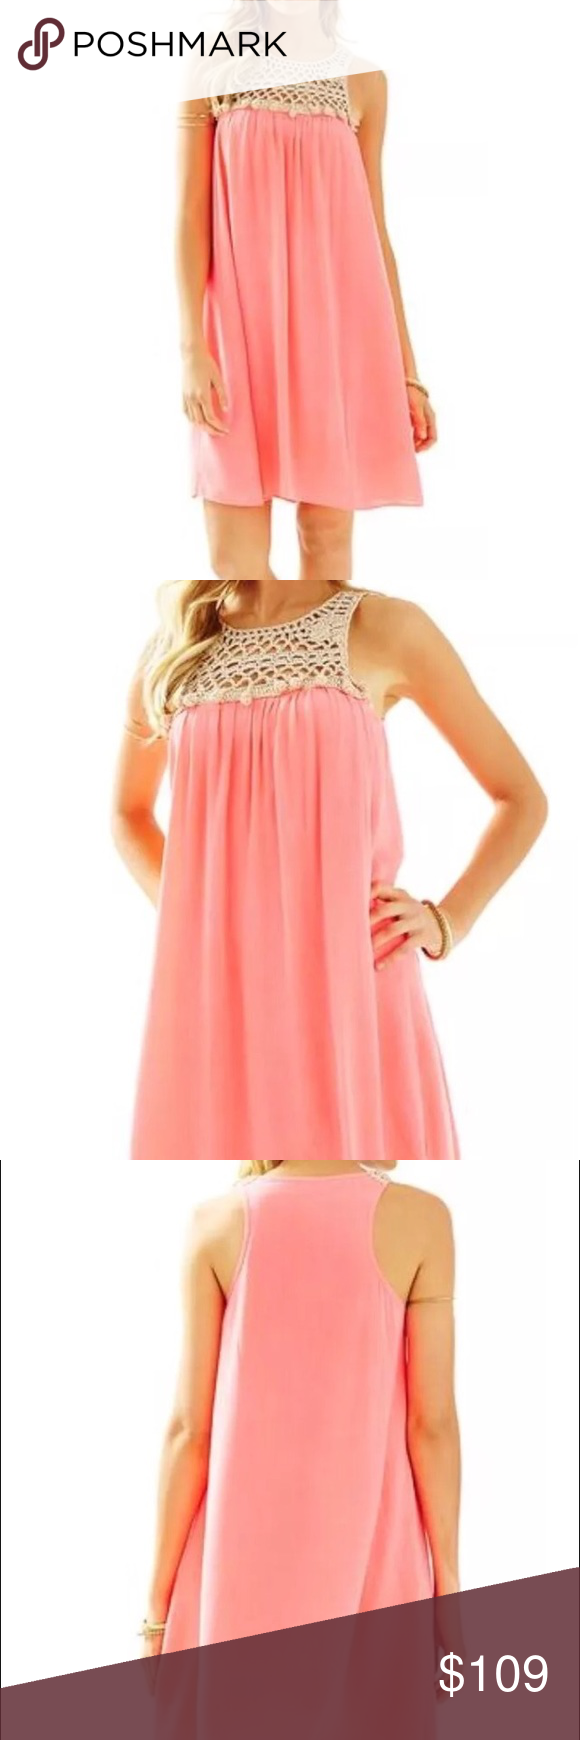 Nwt rachelle dress pink sun ray lilly pulitzer guaranteed new with